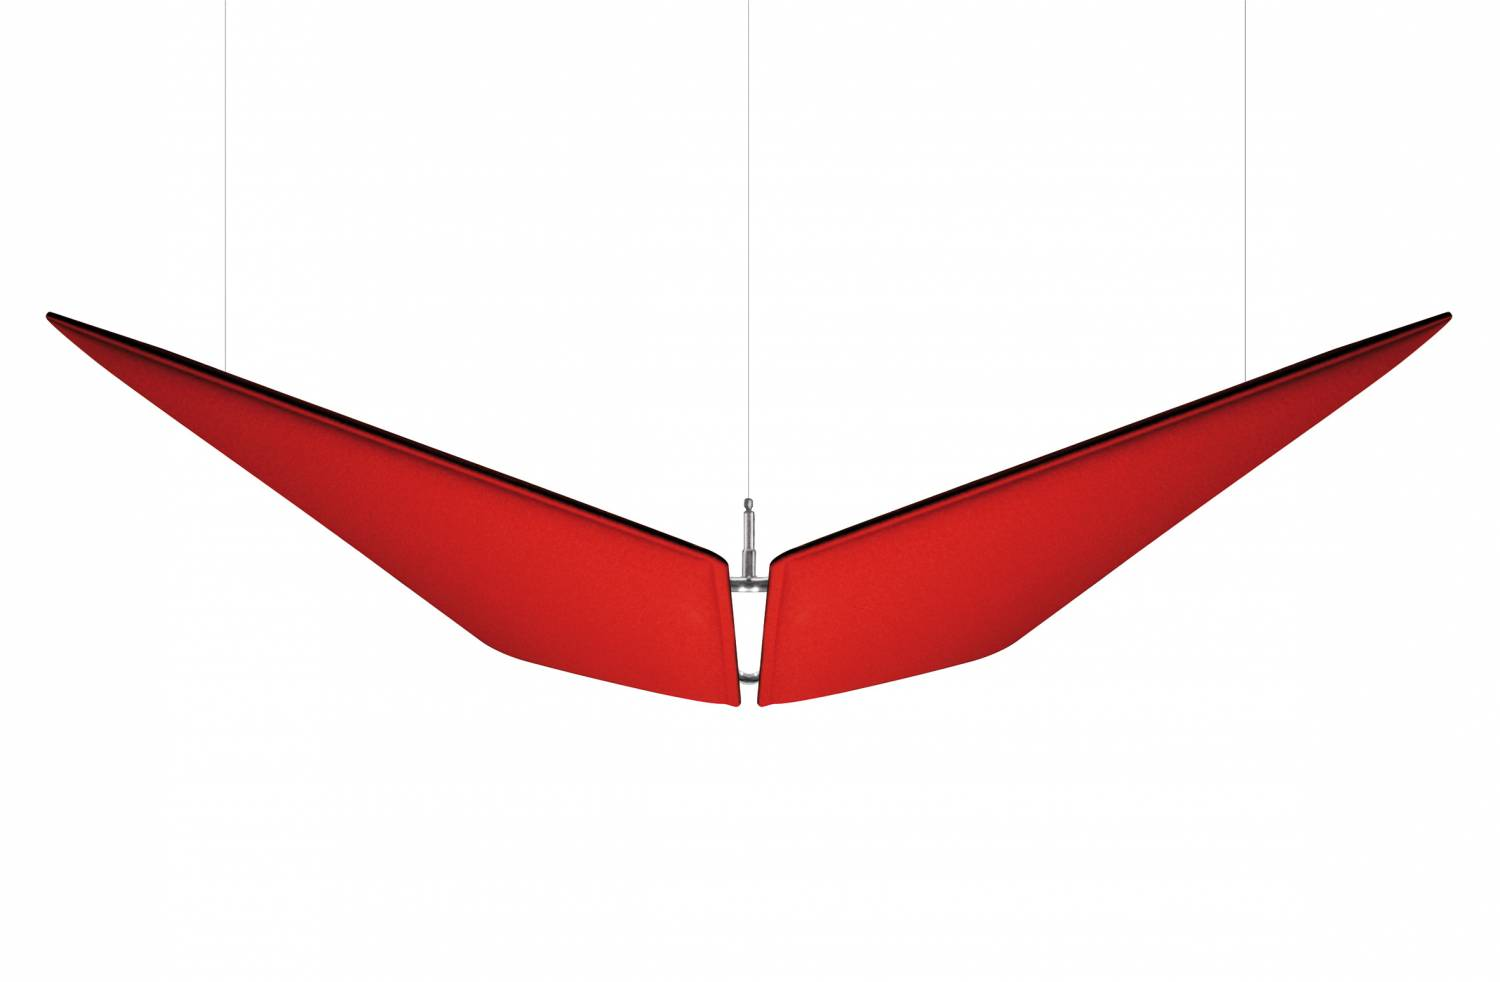 V-Flap-Red-Acoustic-Panels-Ceiling-Suspended